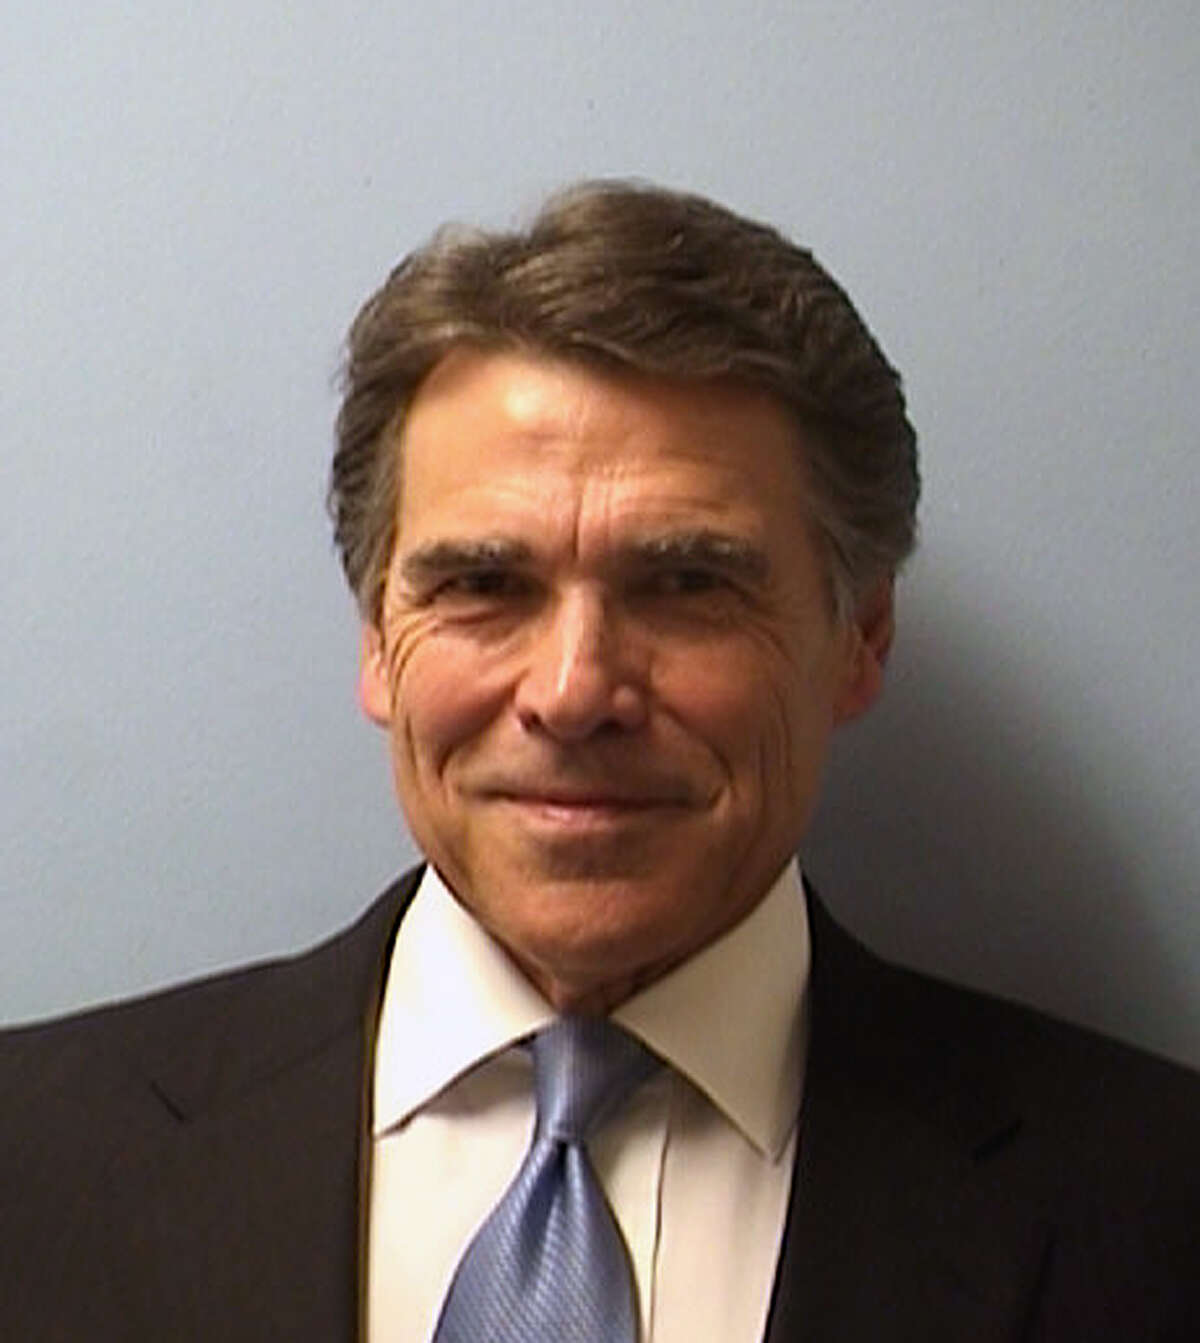 Gov. Rick Perry was indicted on two felony indictments of abuse of power.